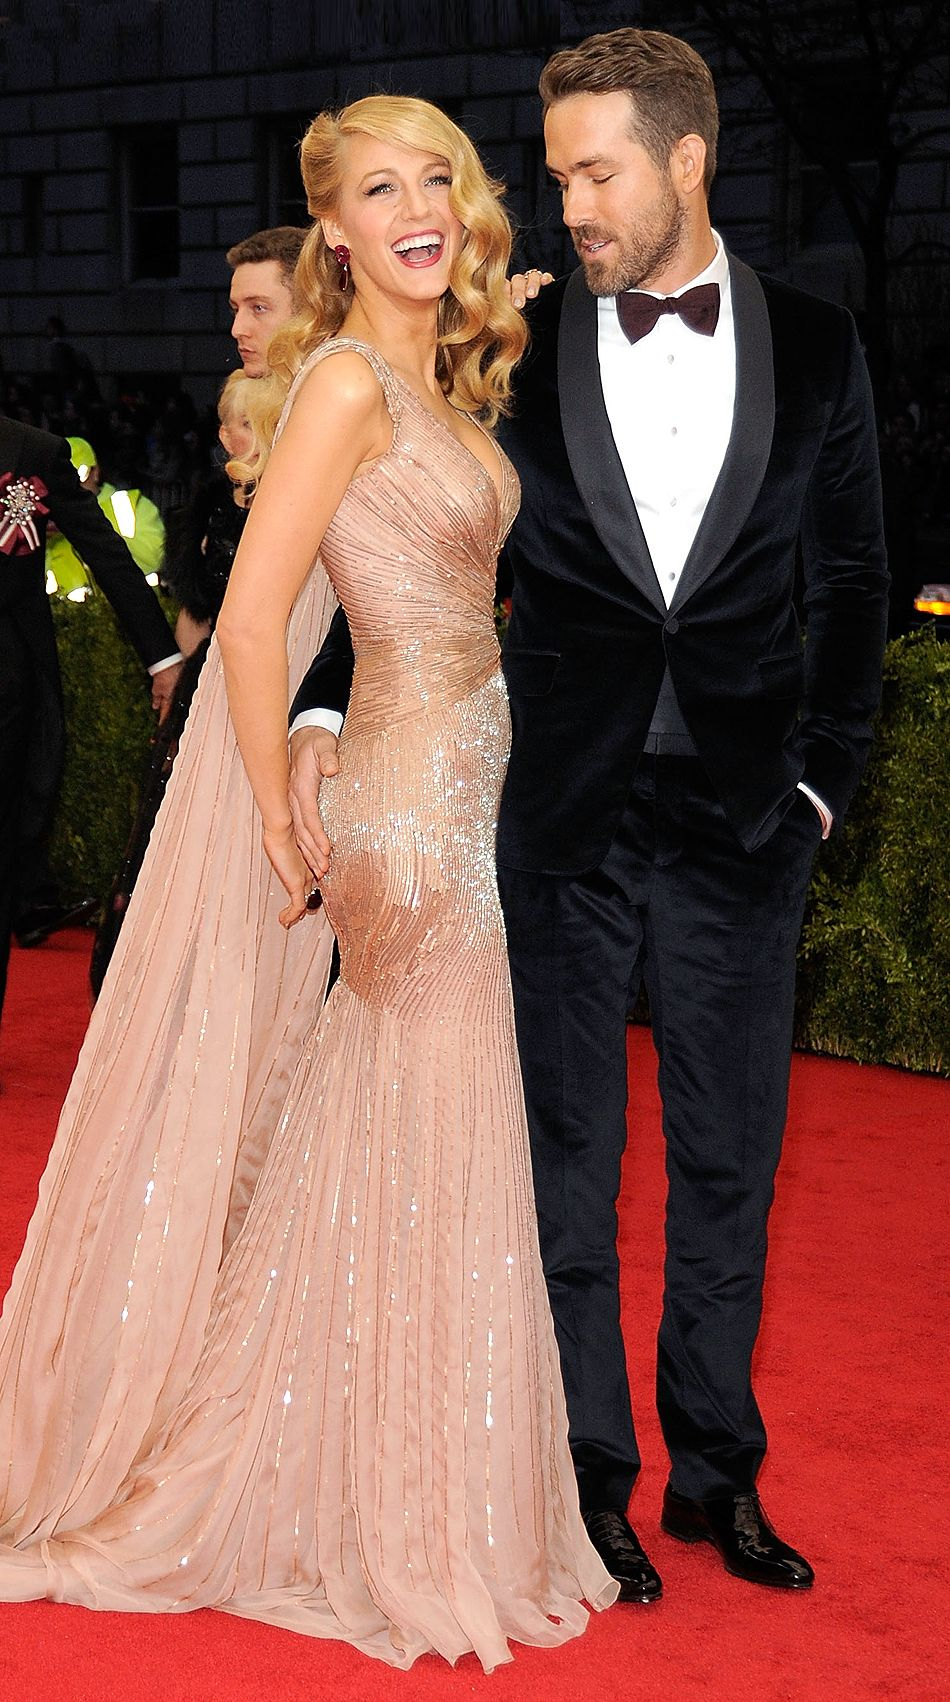 Blake Lively and Ryan Reynolds Go for Coordinating Black